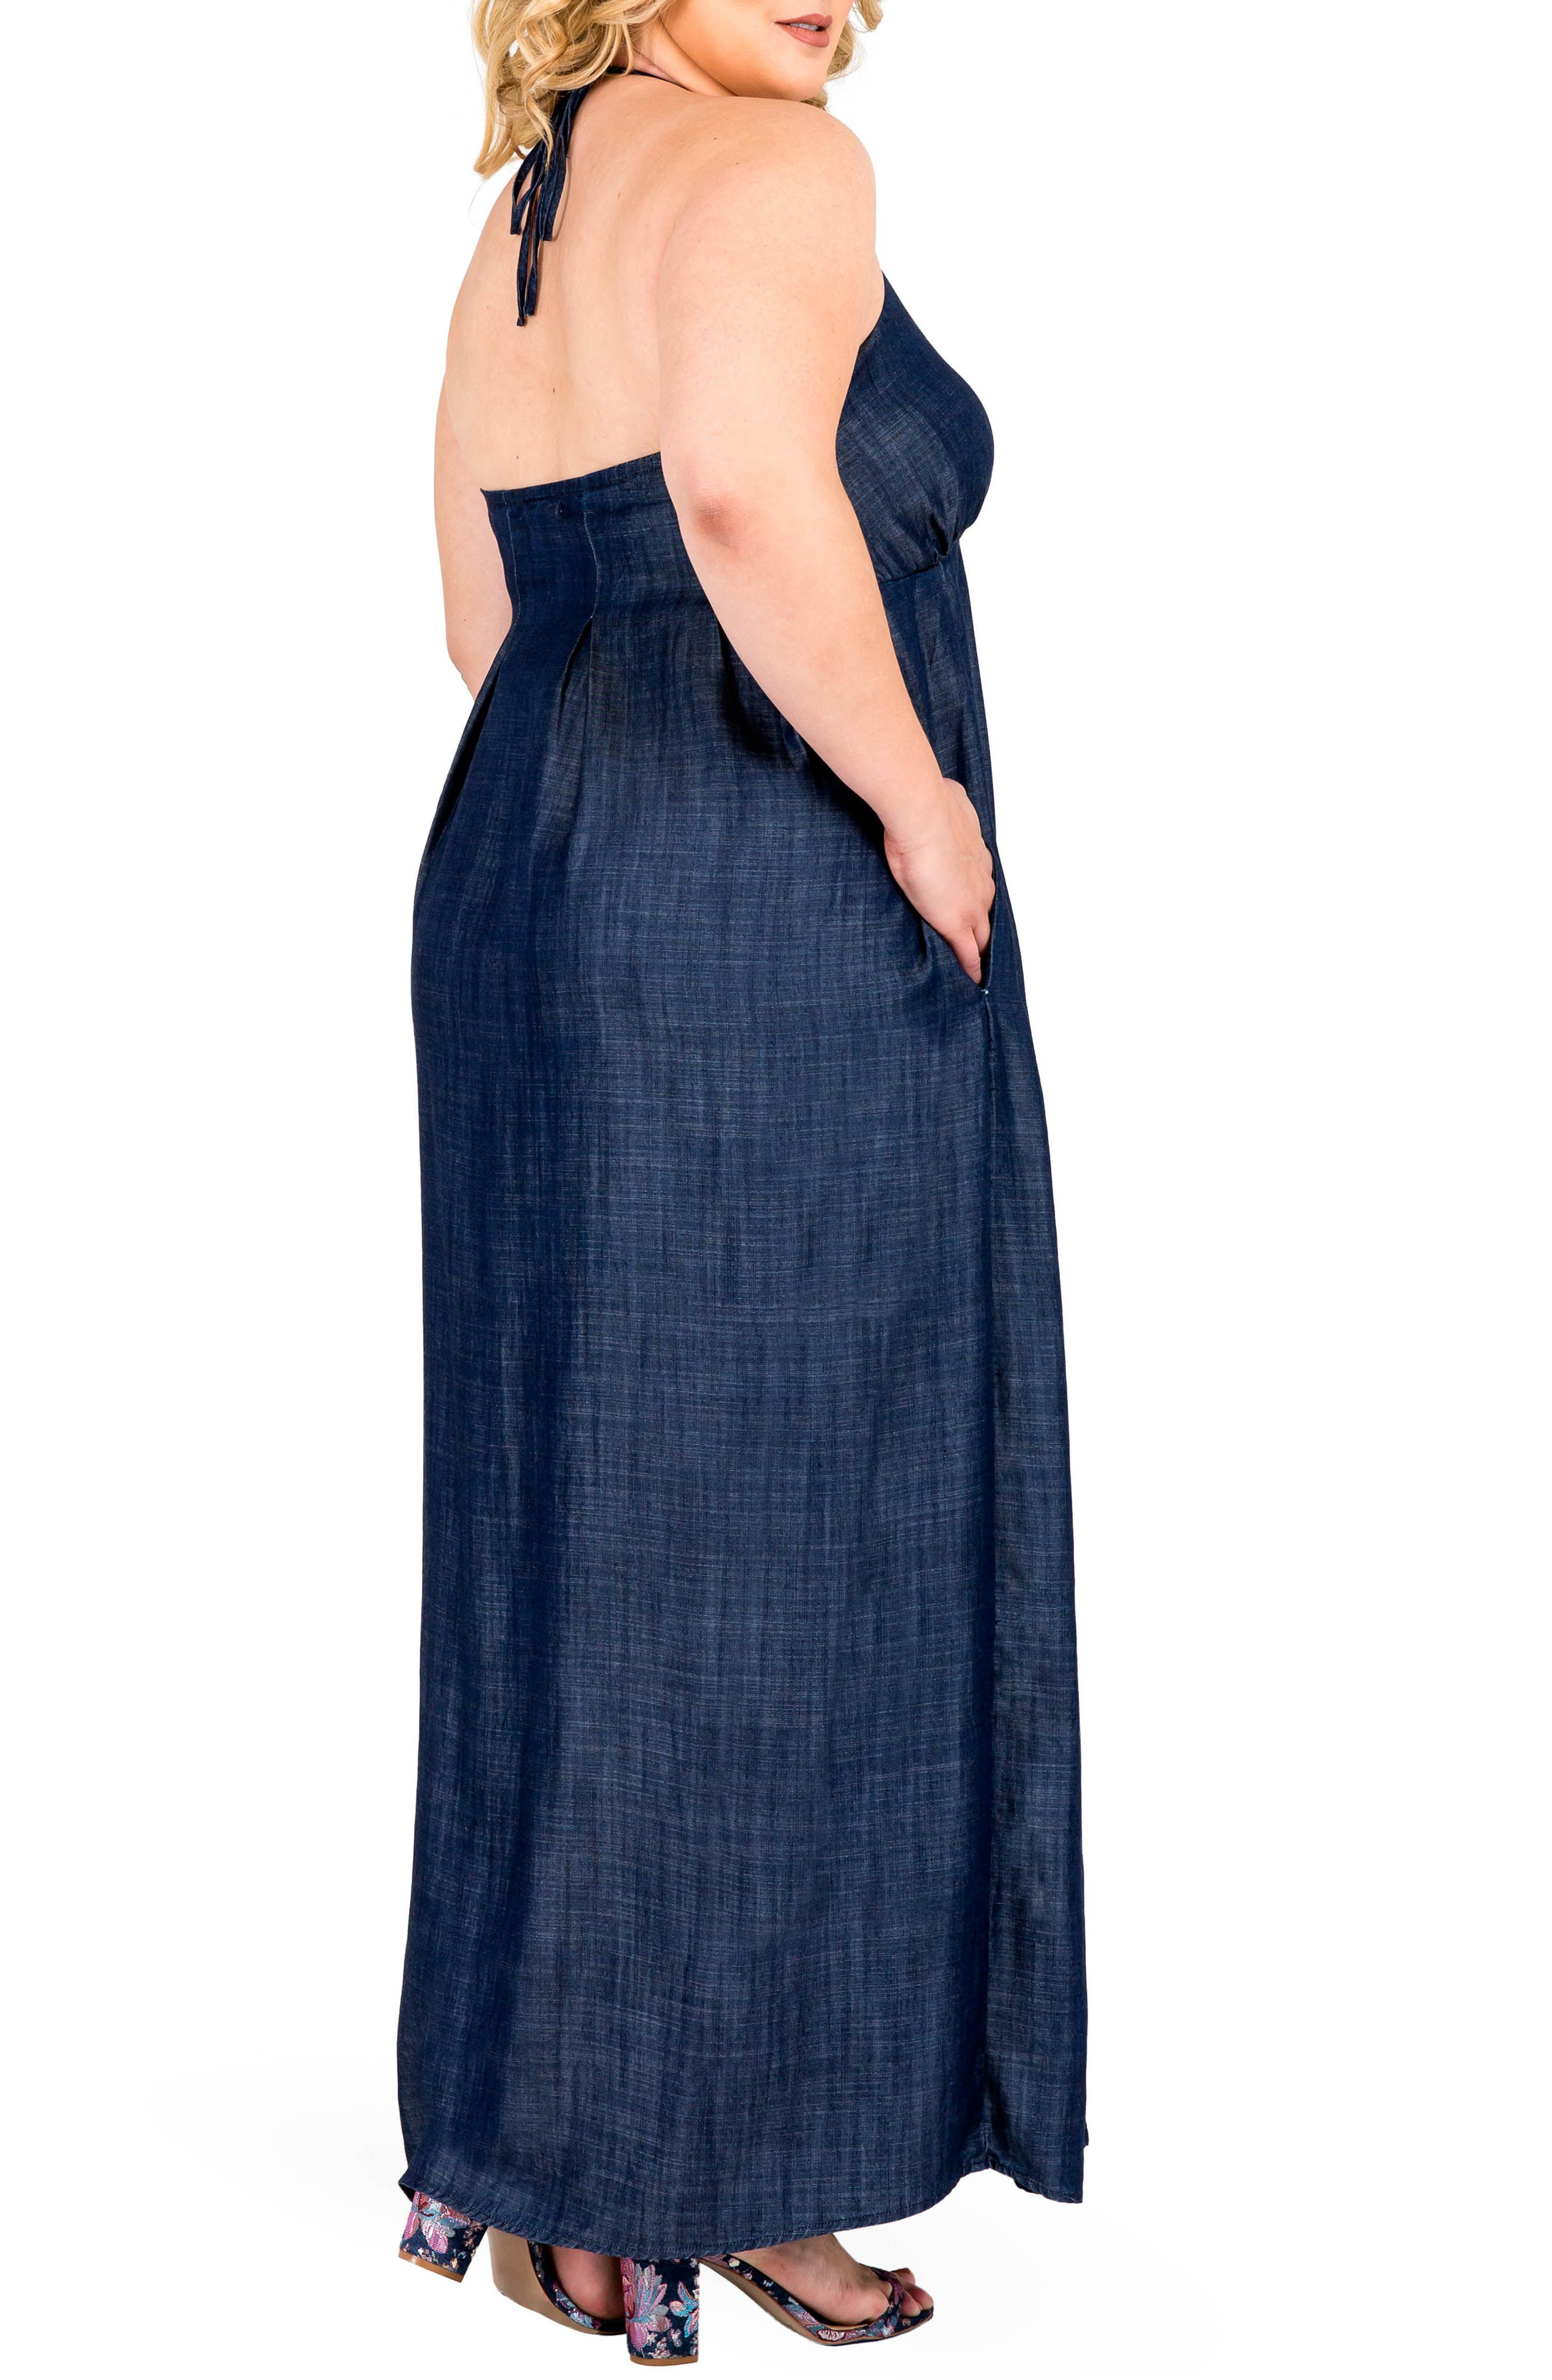 STANDARDS & PRACTICES,                             Maui Maxi Chambray Halter Dress,                             Alternate thumbnail 3, color,                             DARK BLUE